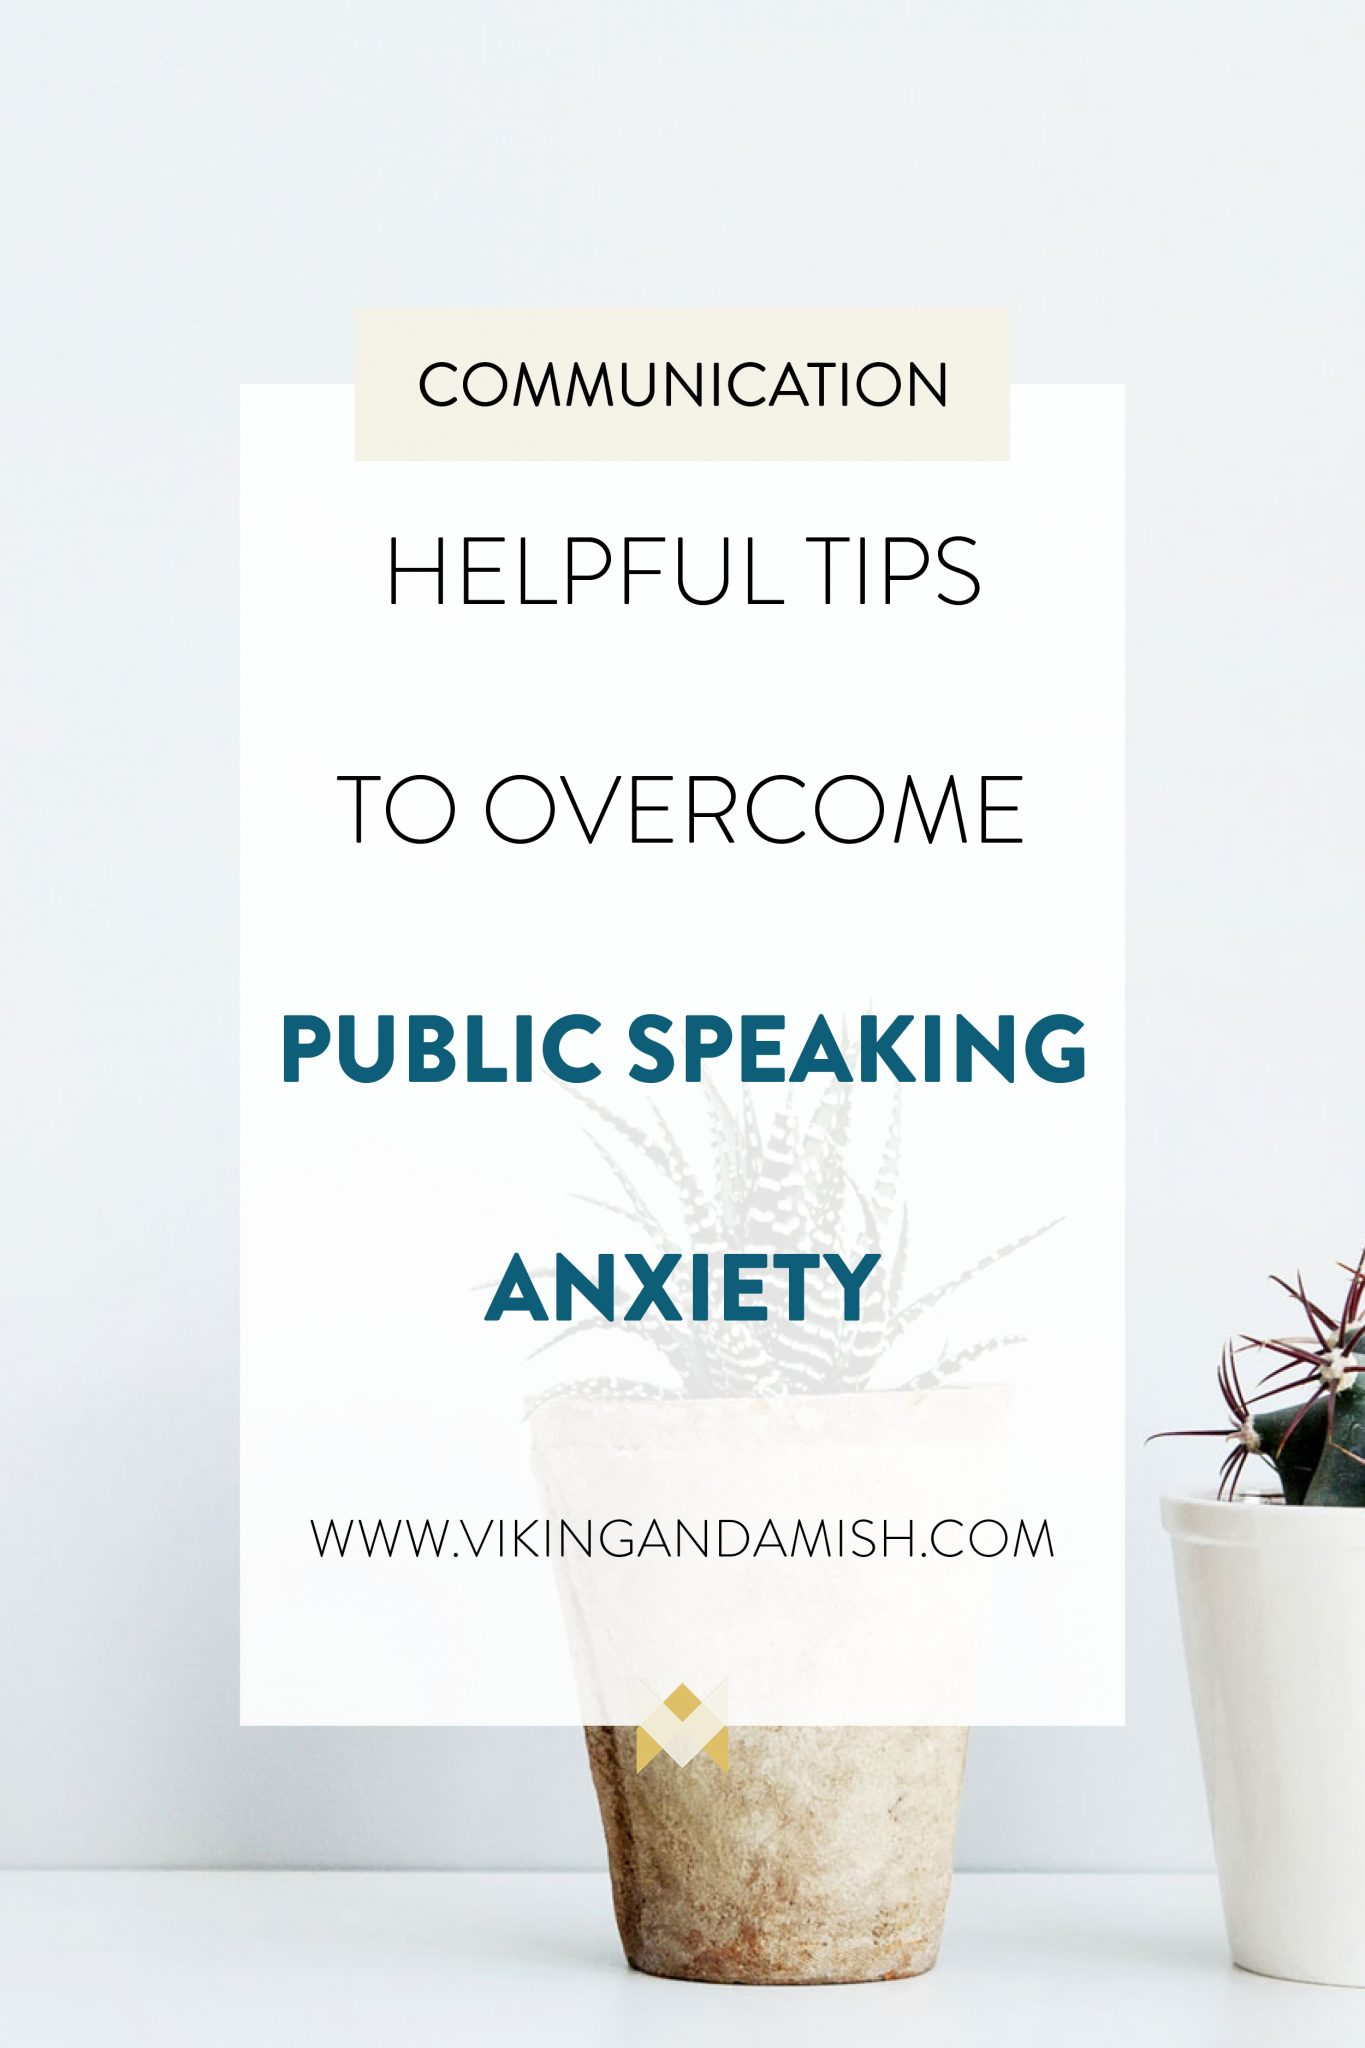 Are you about to give a speech, but the stress is overtaking your mind? Avoid anxiety before speaking in public with these helpful tools.